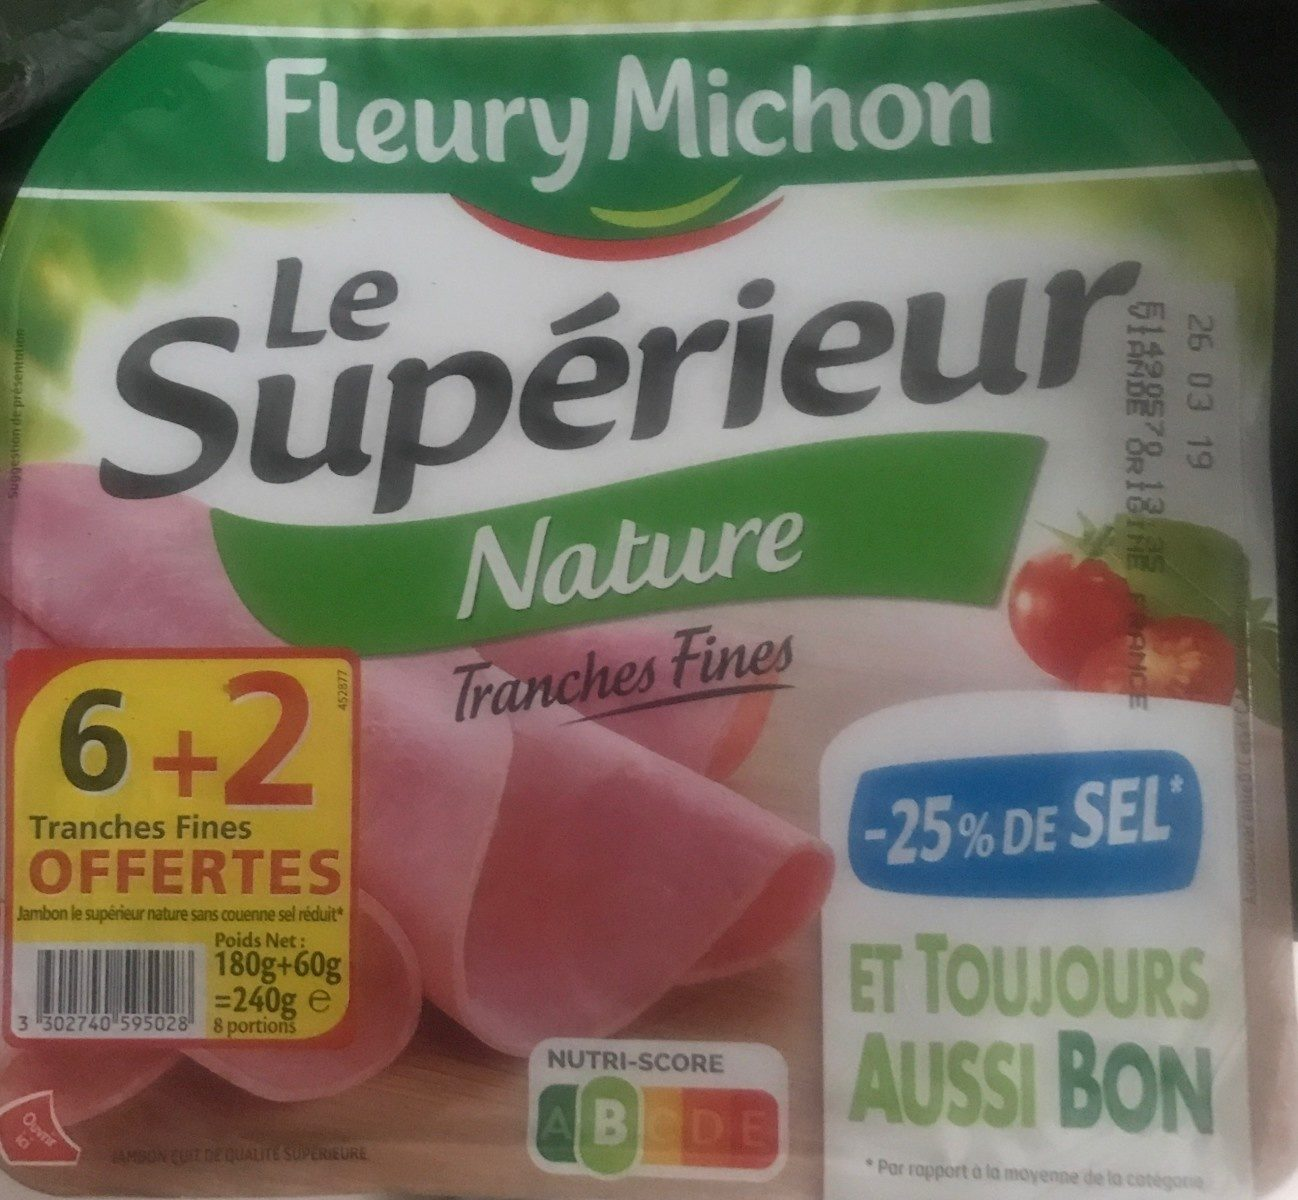 Le superieur nature - Product